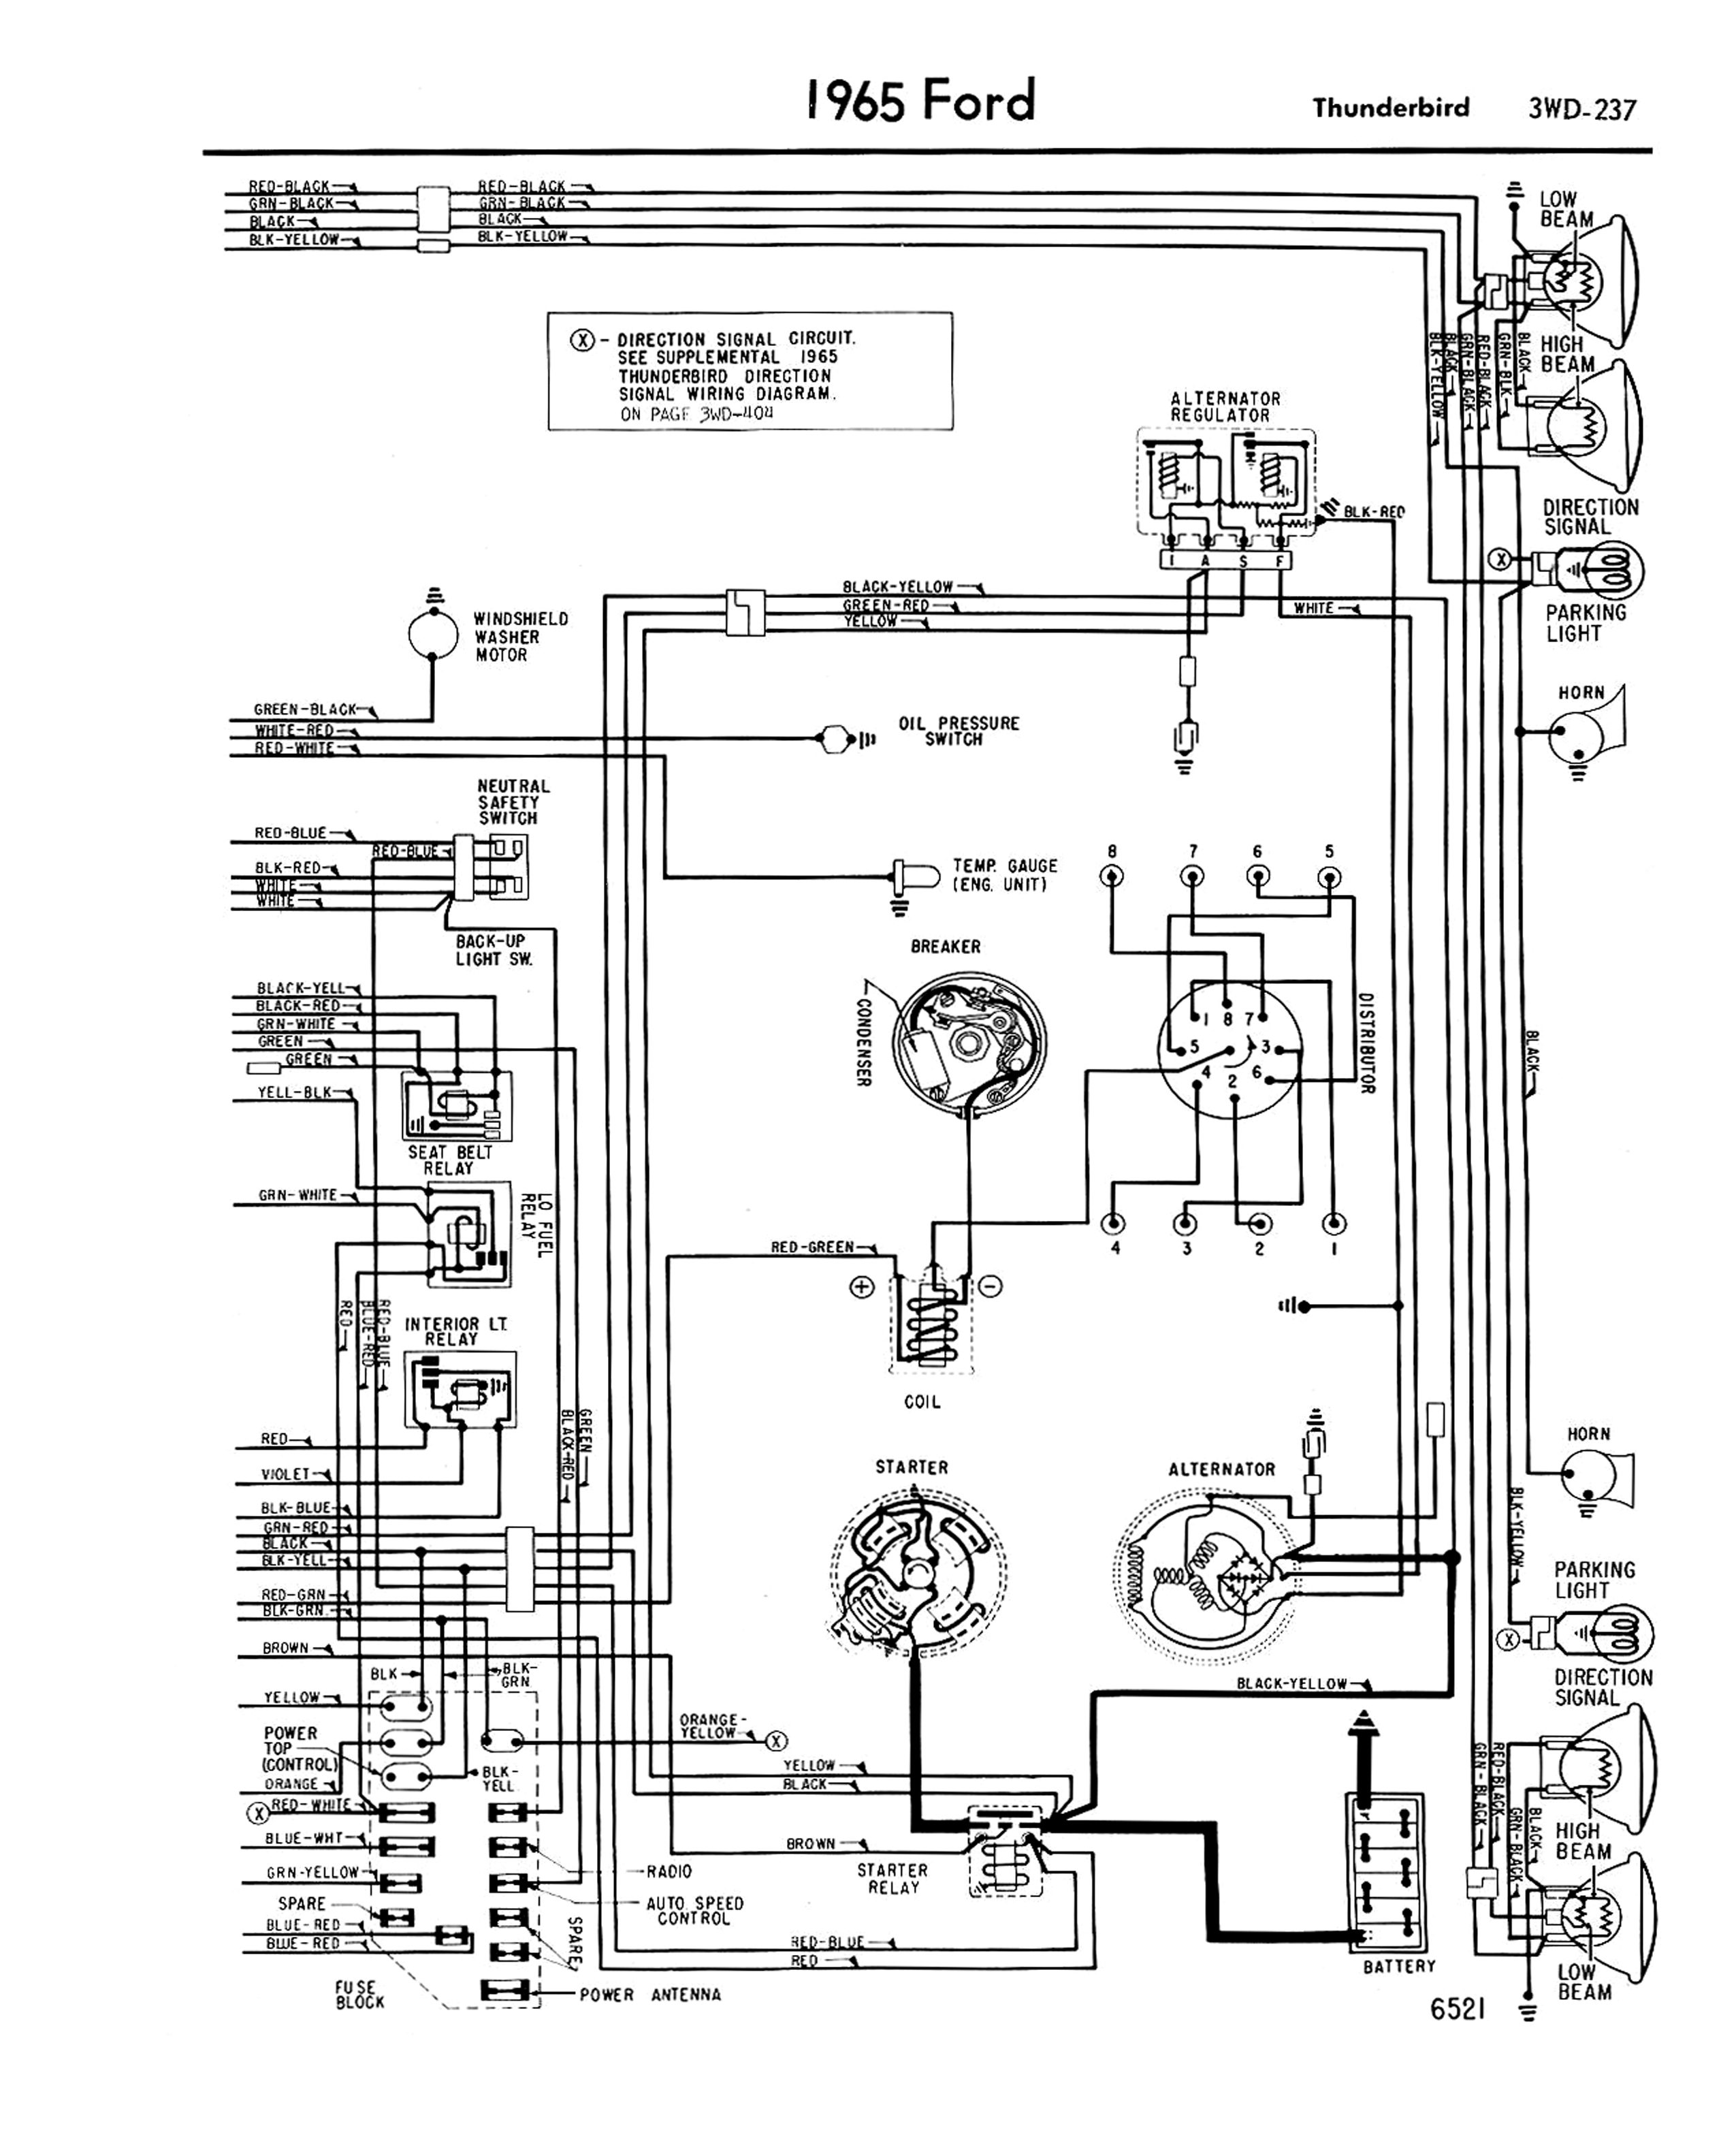 65 Ford Thunderbird Wiring Diagram Great Installation Of 1968 Mustang For Light Third Level Rh 4 5 12 Jacobwinterstein Com 1965